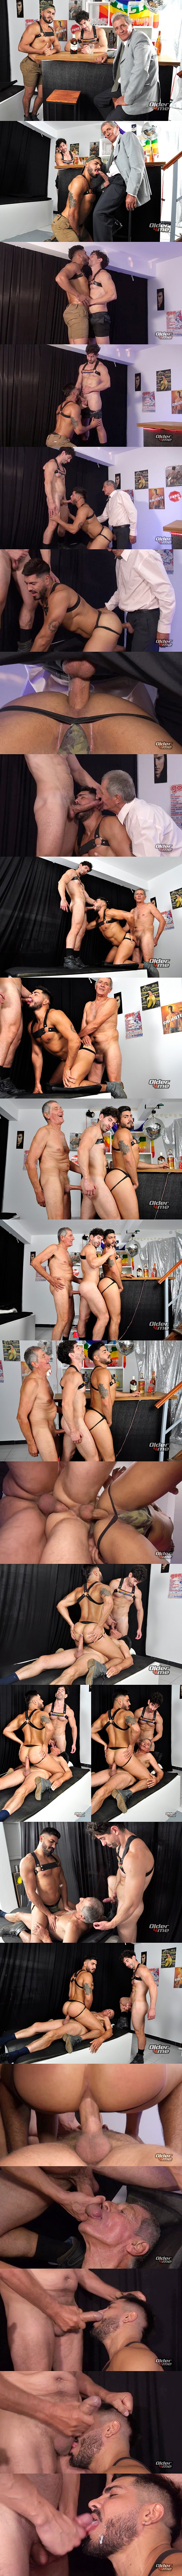 Hung silver fox Chaco barebacks male stripper Icarus and Victorino in an interracial older younger threeway until Chaco and Victorino give Icarus two facials in Last Call at Older4me 01